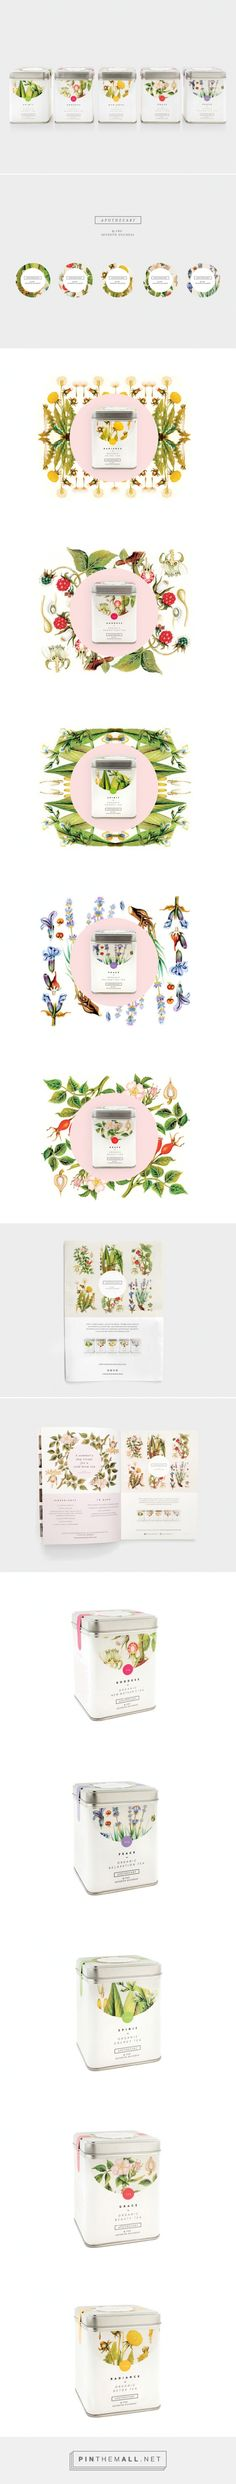 Apothecary #Tea #Packaging by Nude Design Studio - http://www.packagingoftheworld.com/2015/01/apothecary-tea-packaging.html